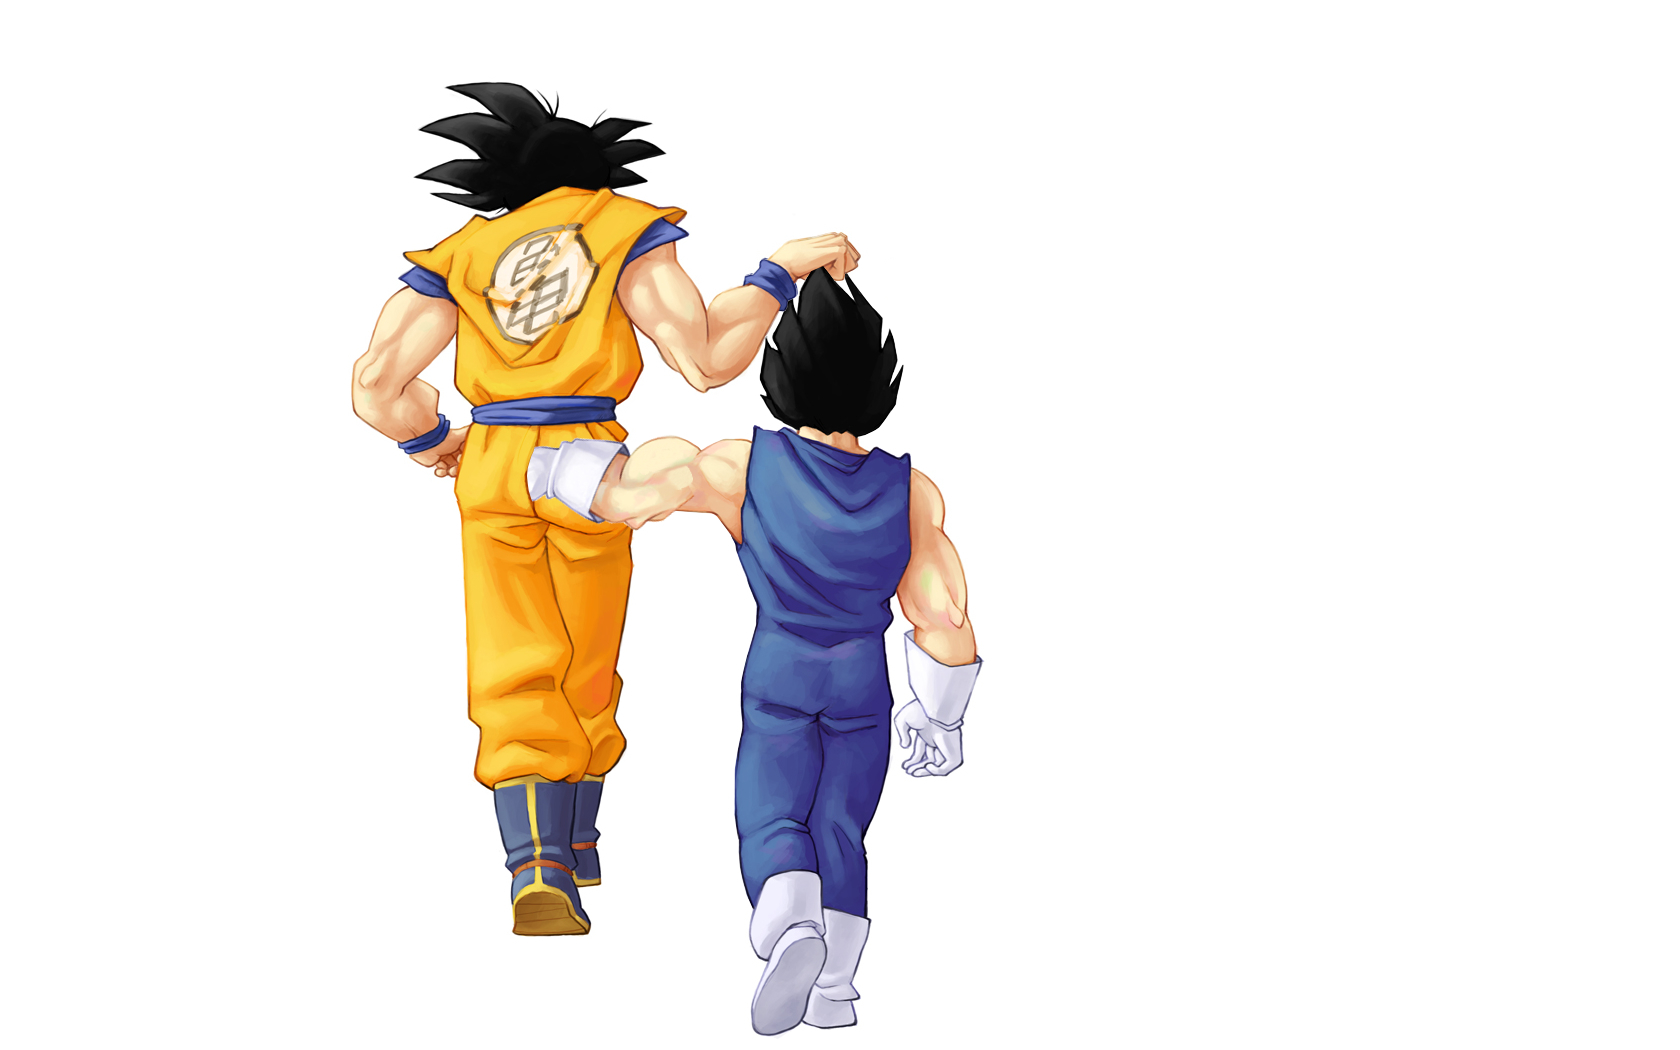 vegeta son goku Anime HD Wallpaper